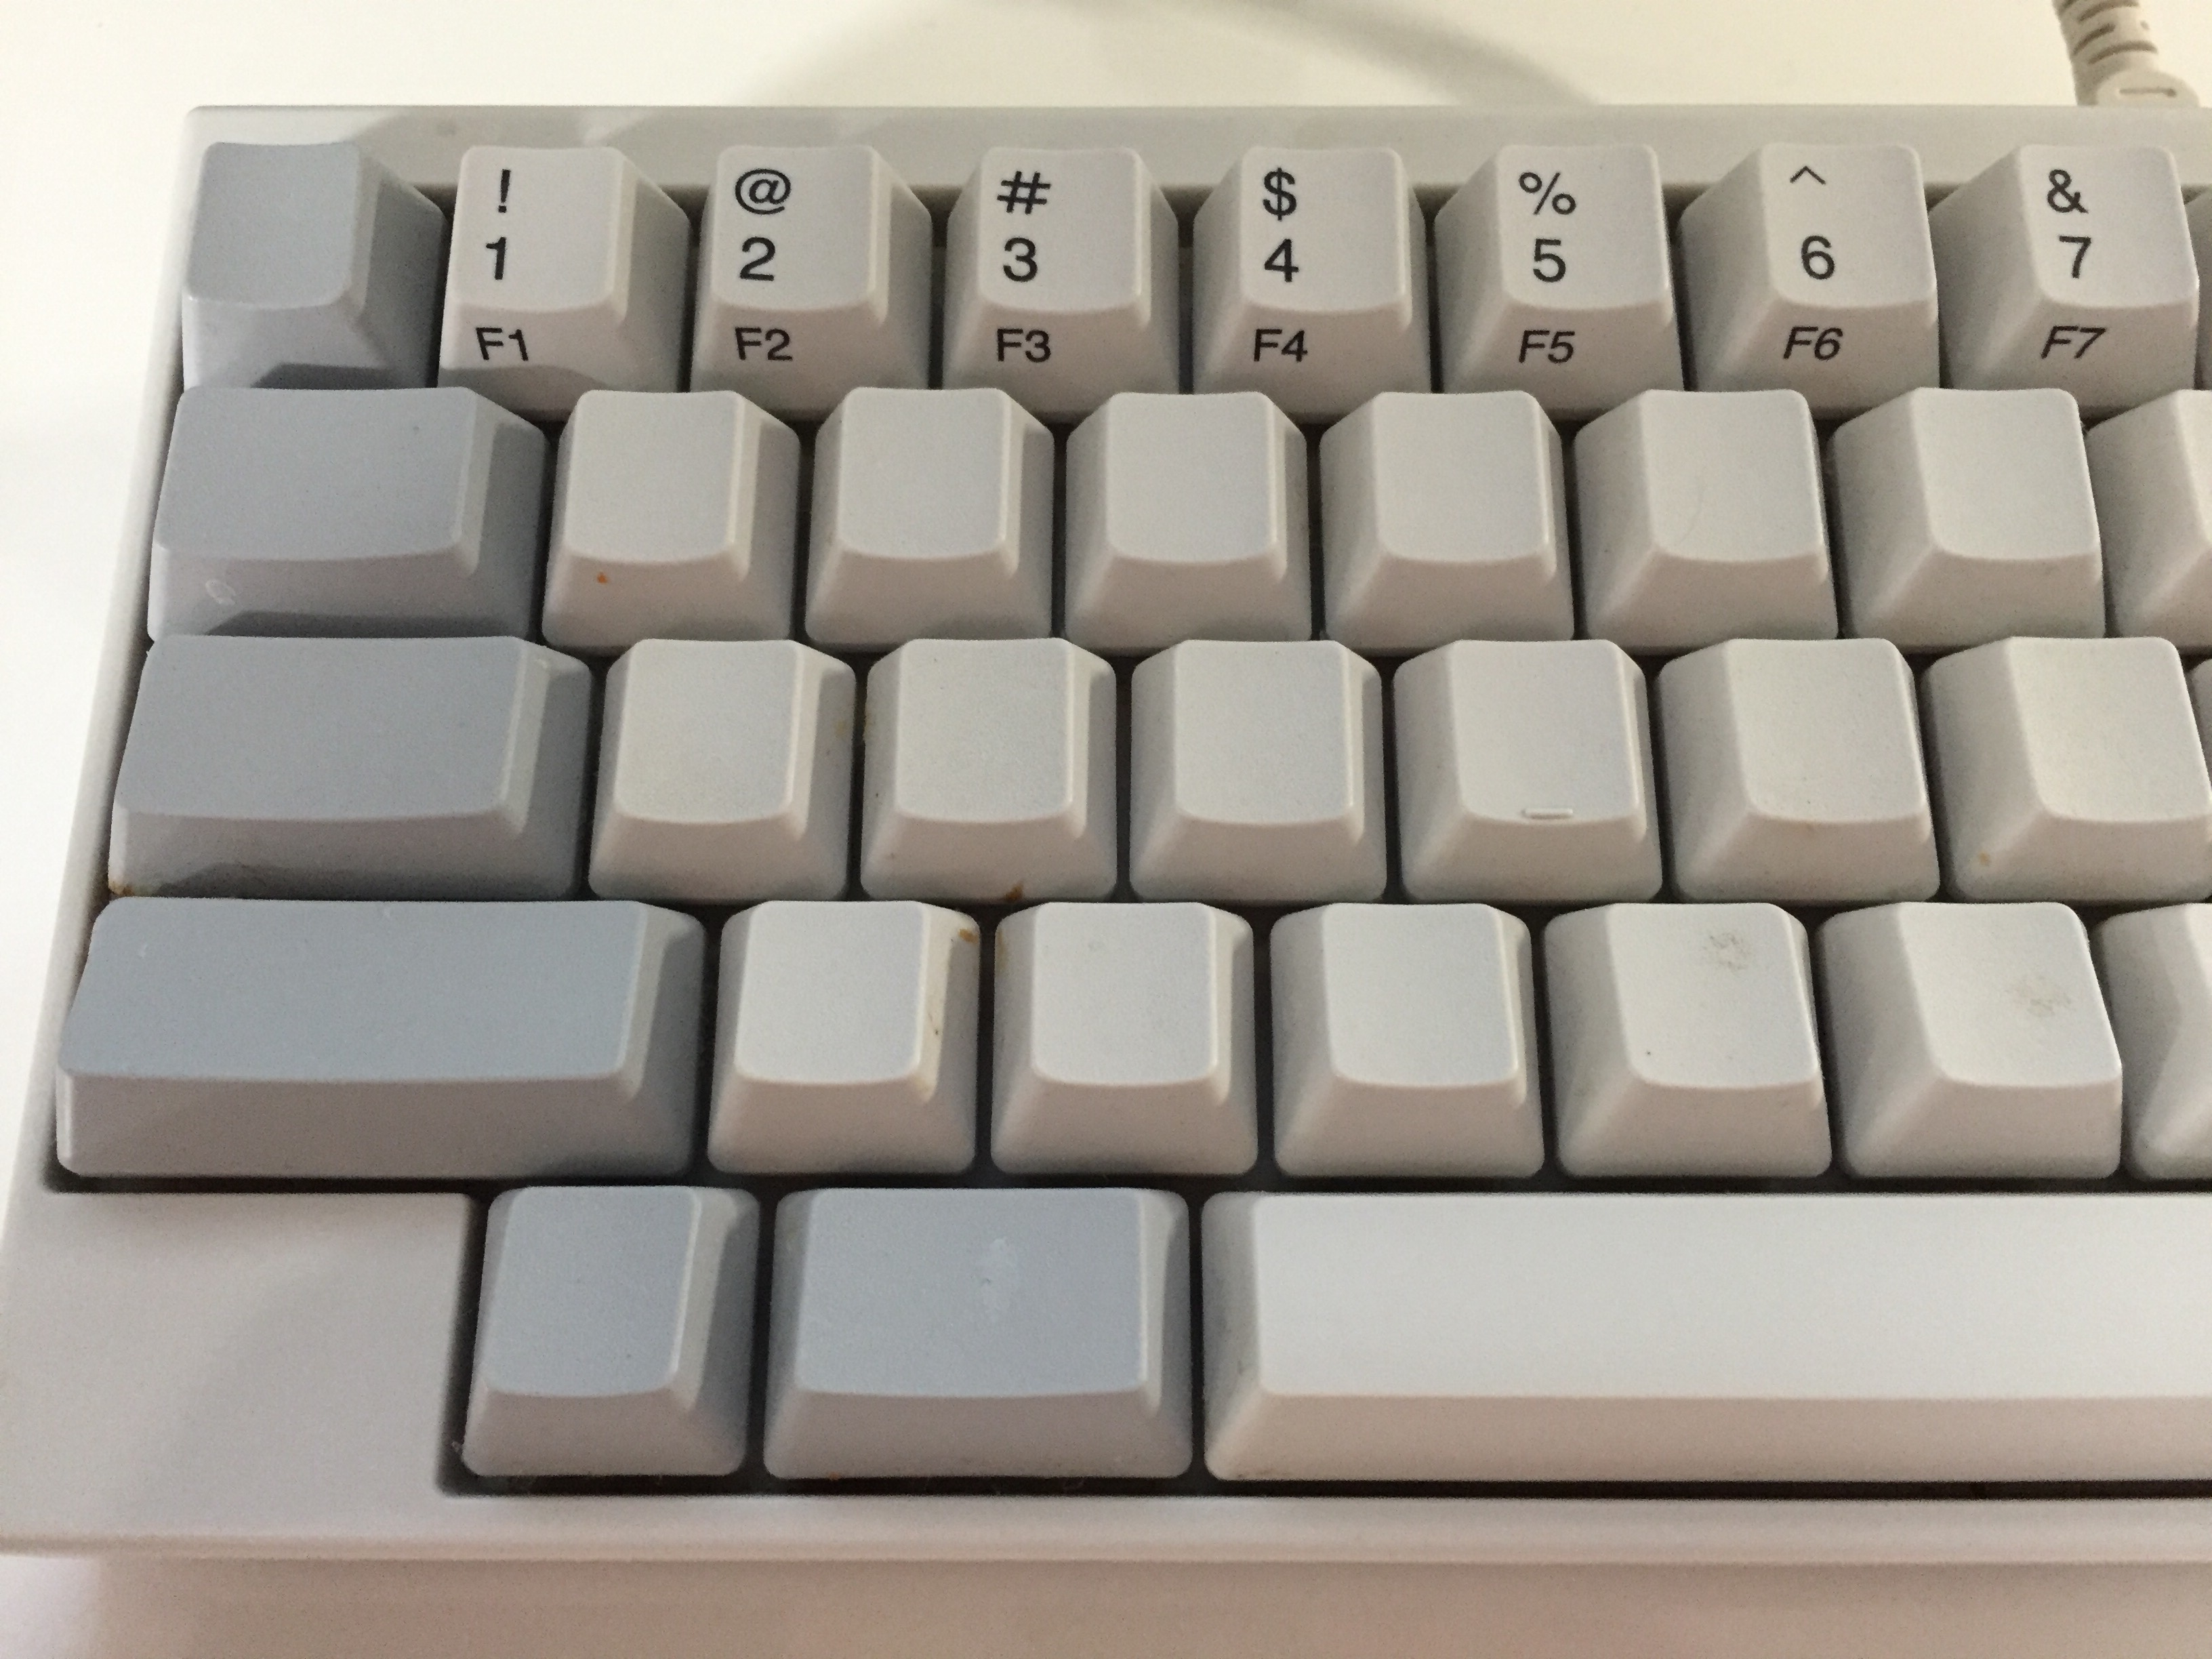 Sexy Mechanical Keyboard Thread | Page 16 | TechPowerUp Forums